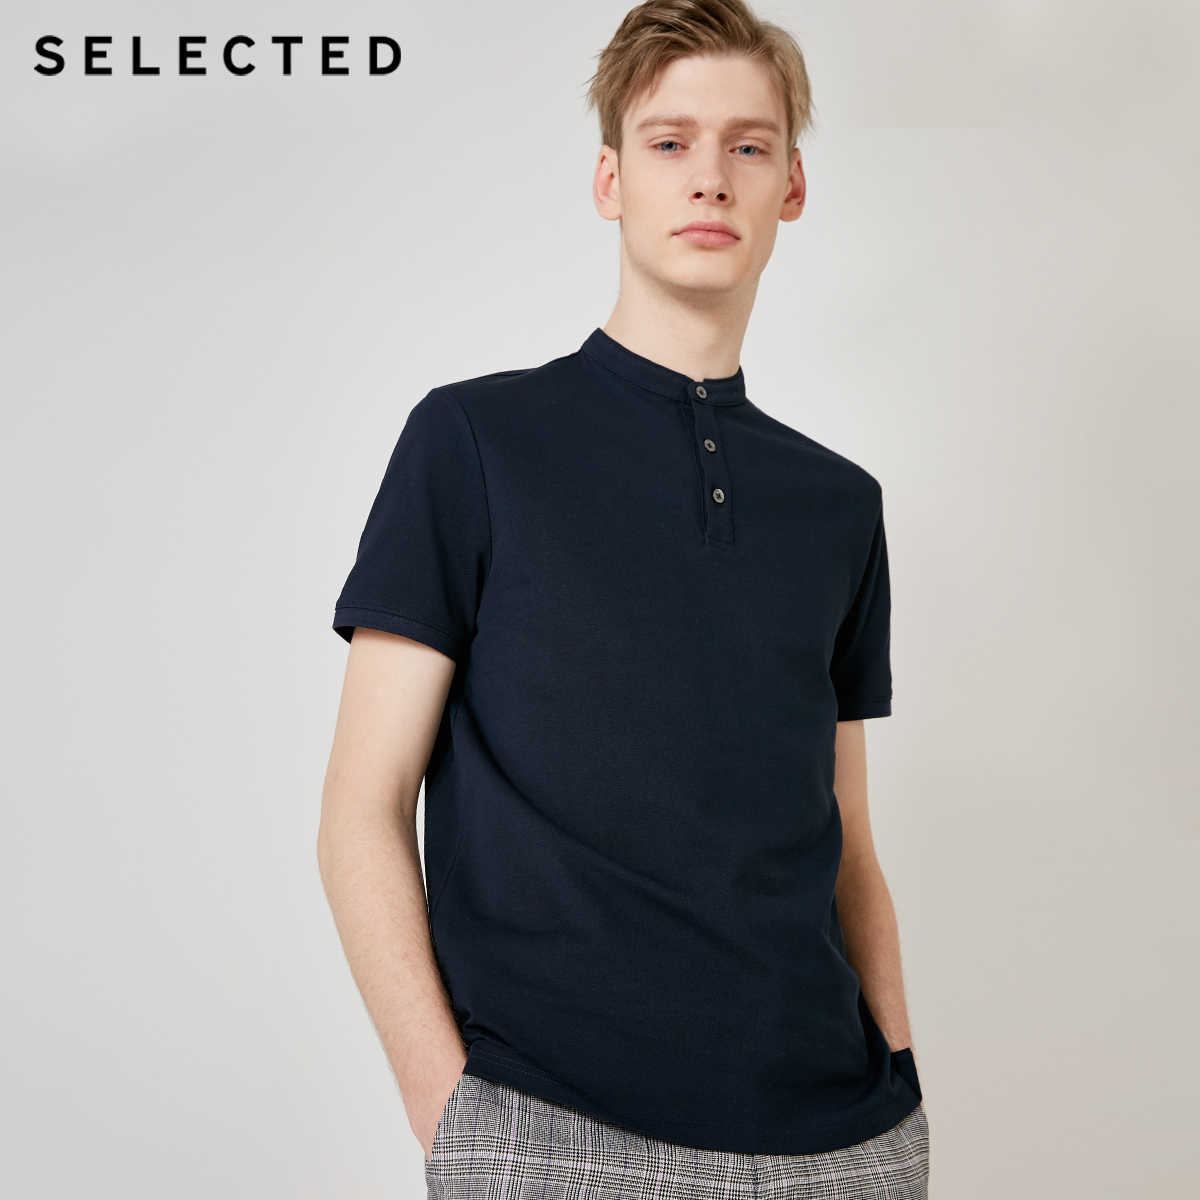 SELECTED Men's Pure Color Poloshirt 비즈니스 캐주얼 탑 S | 419206549